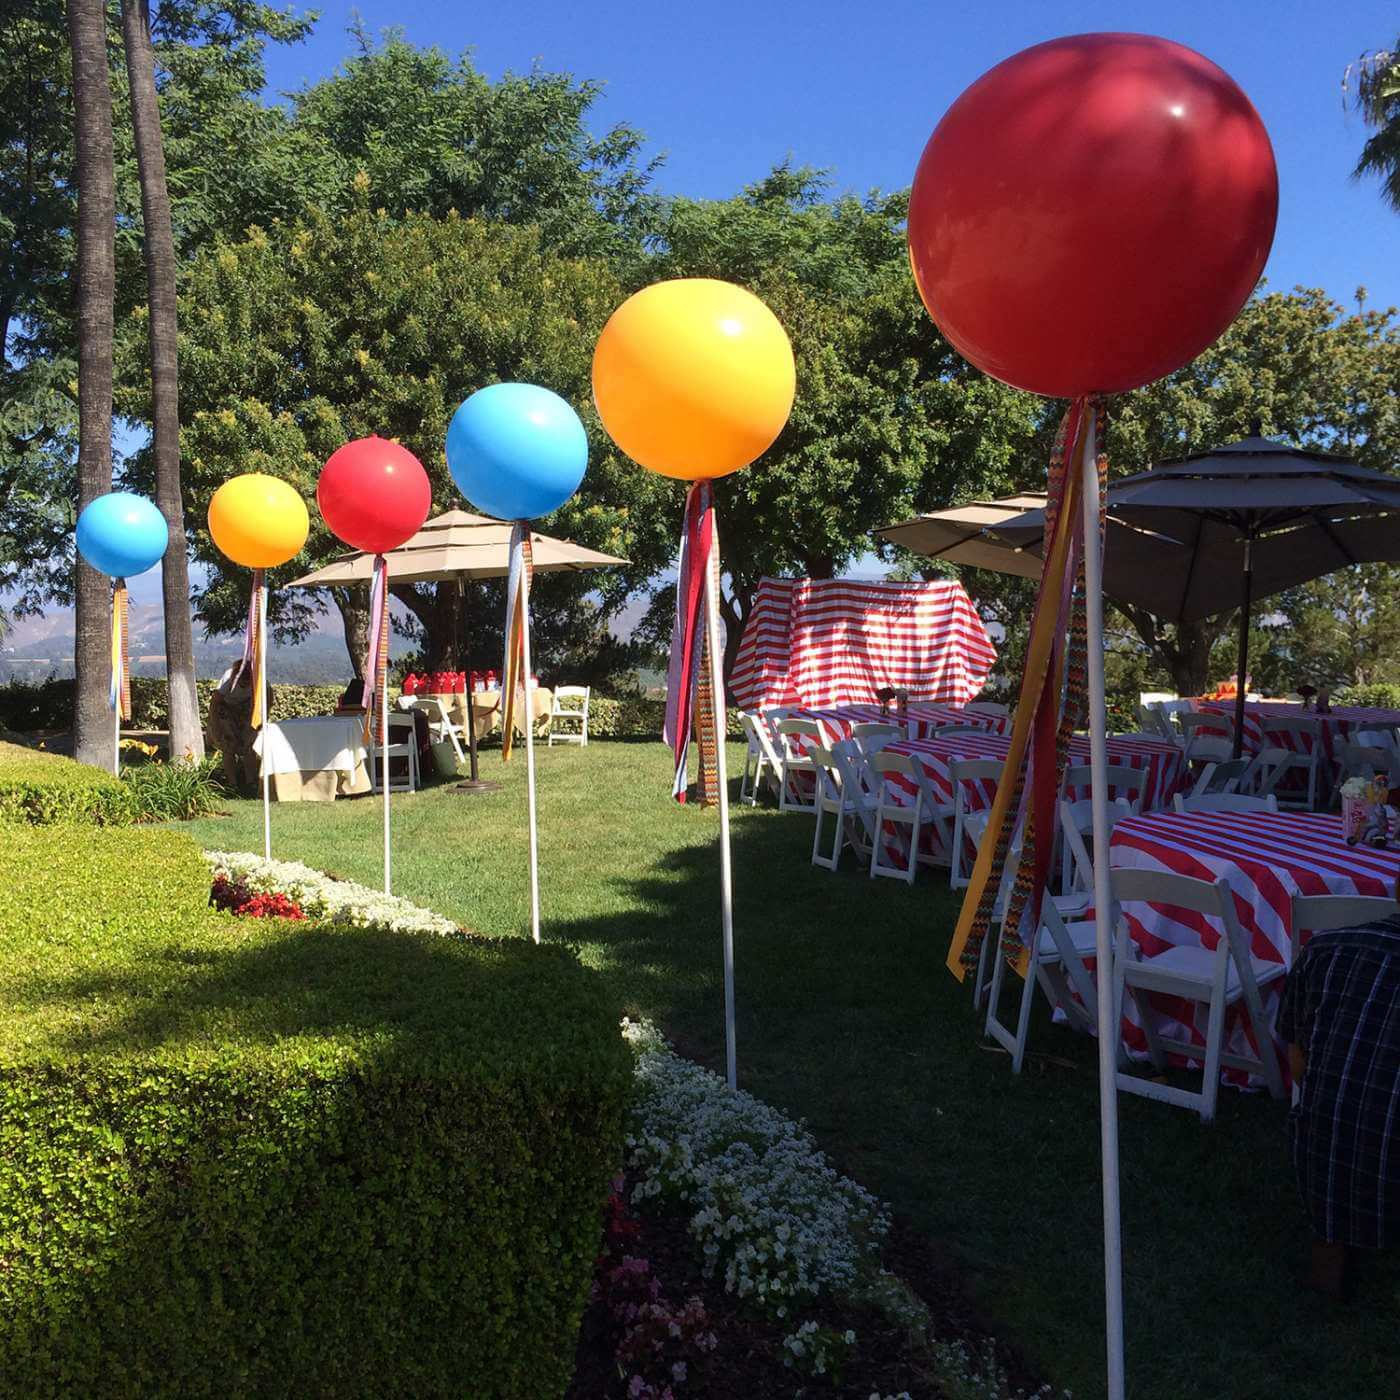 Lollipop party balloons